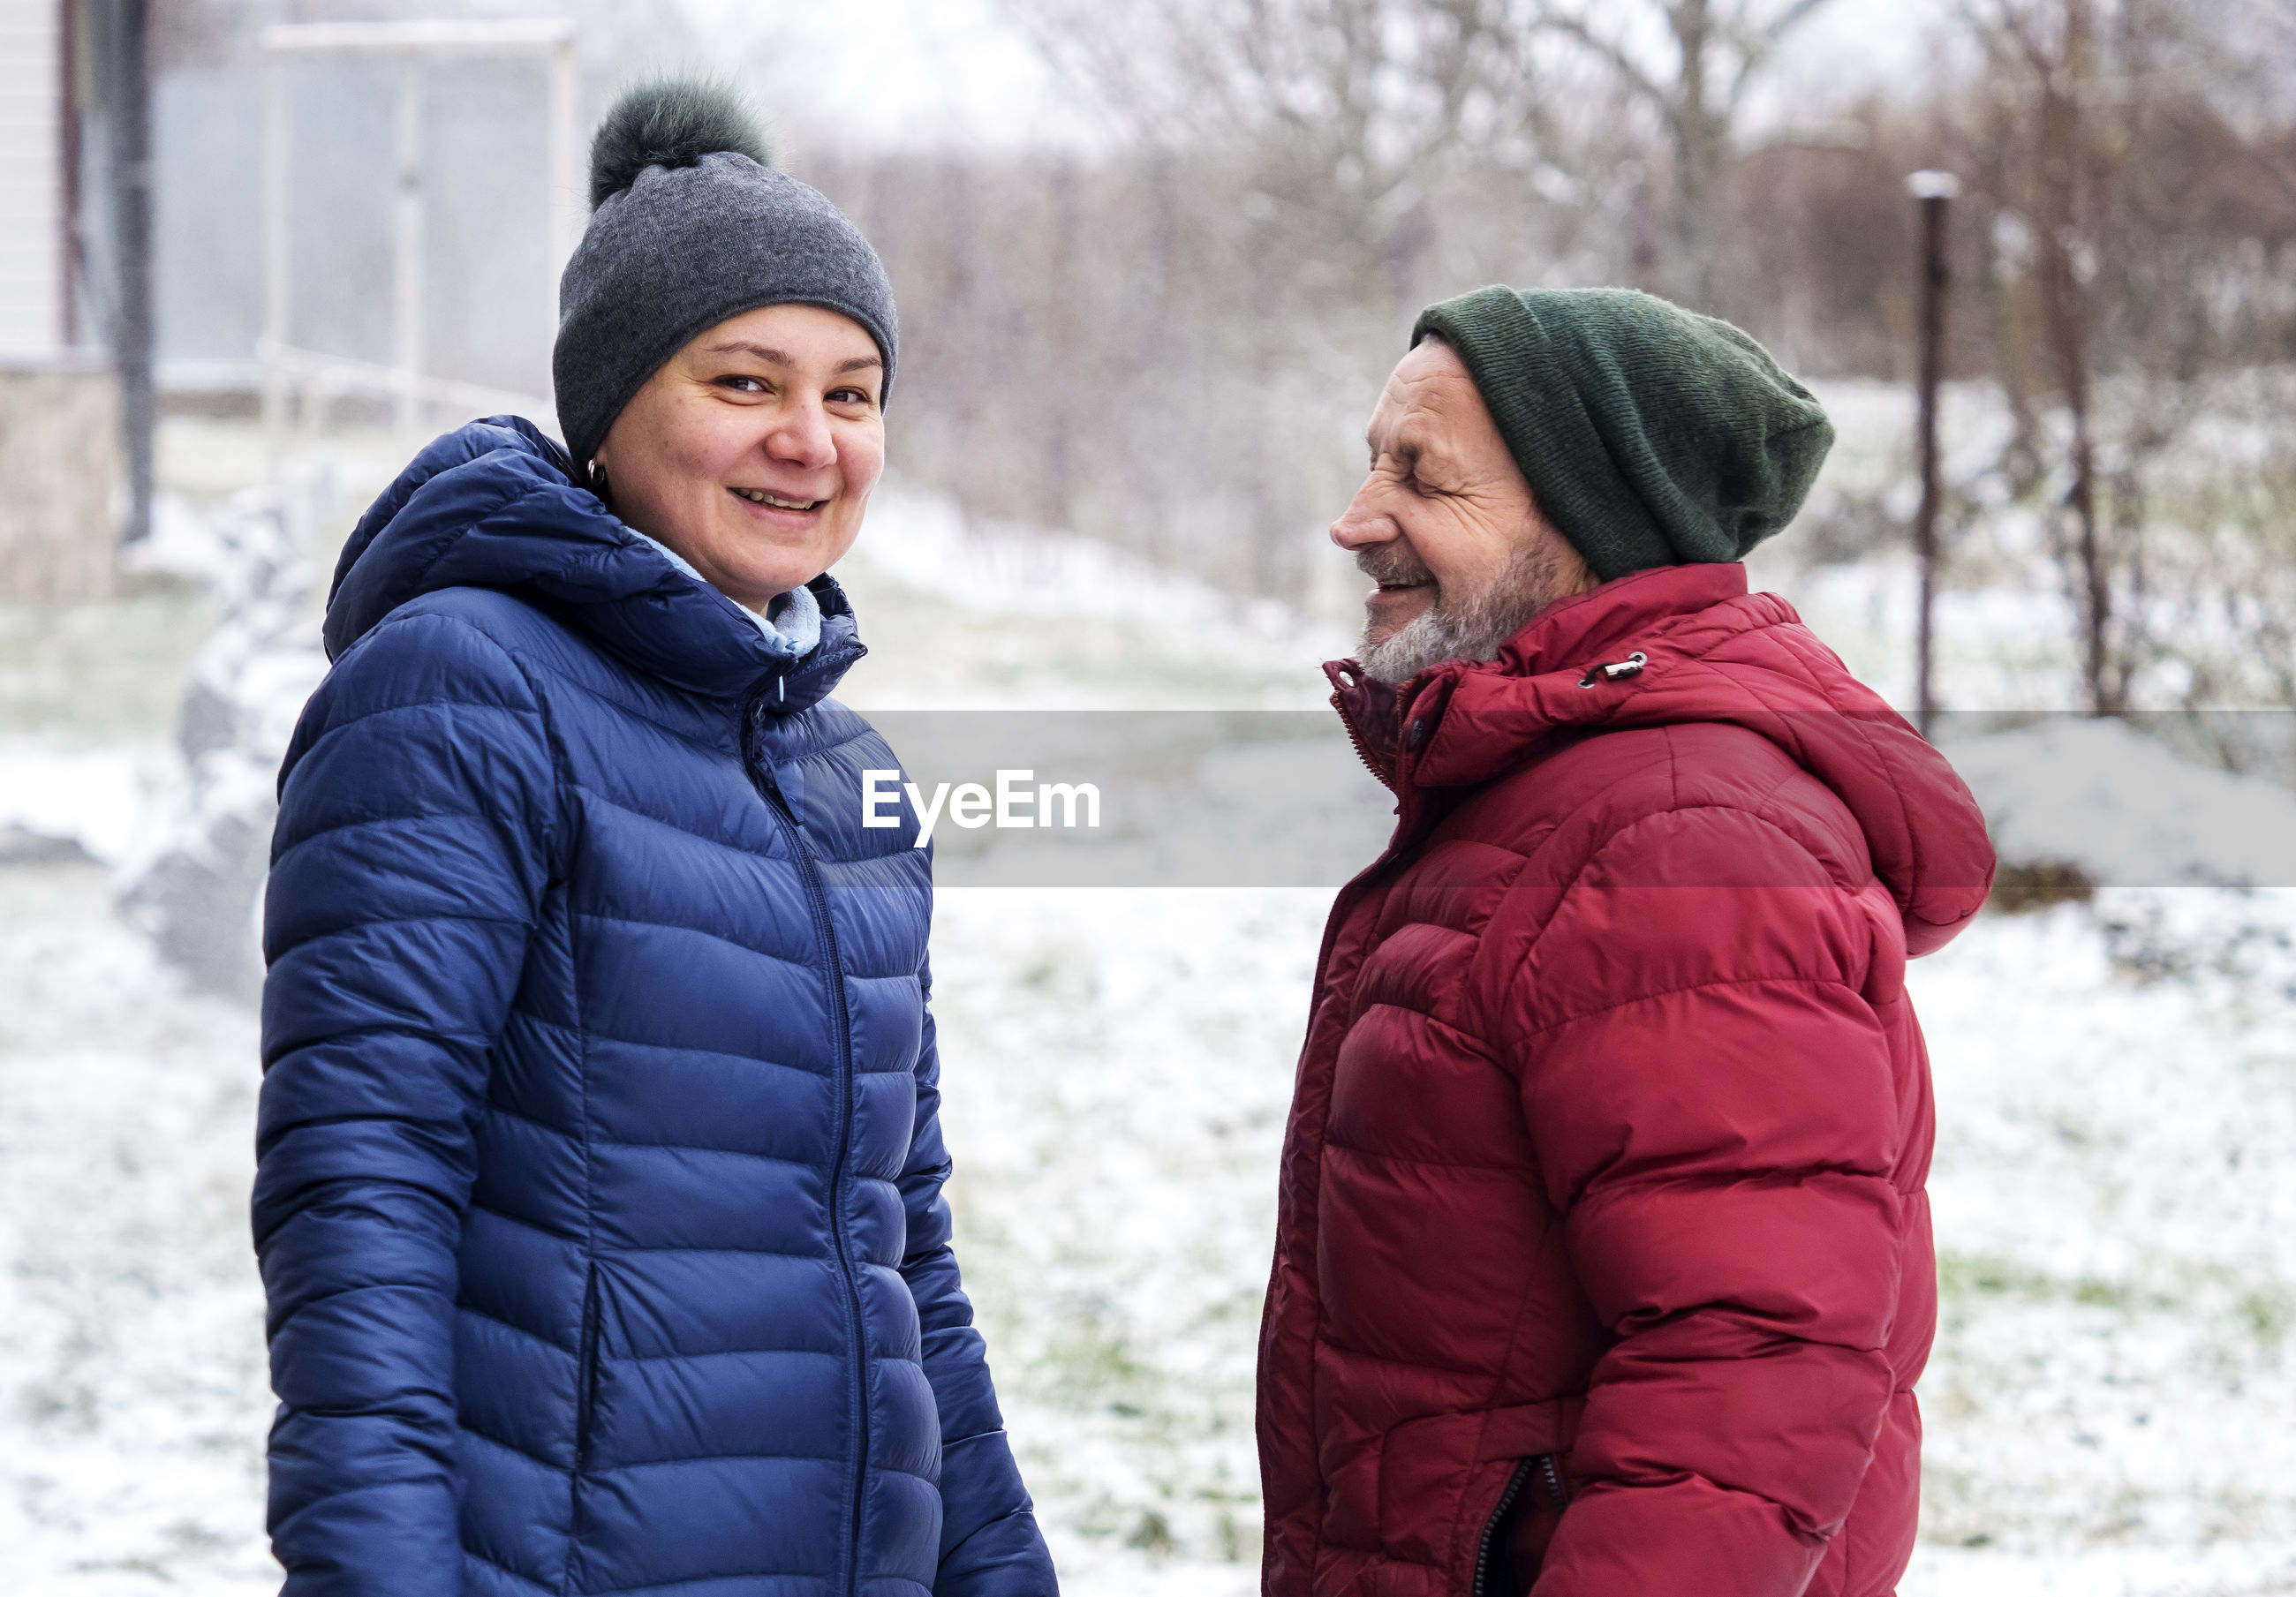 Portrait of mature woman wearing warm clothing standing with father outdoors during winter